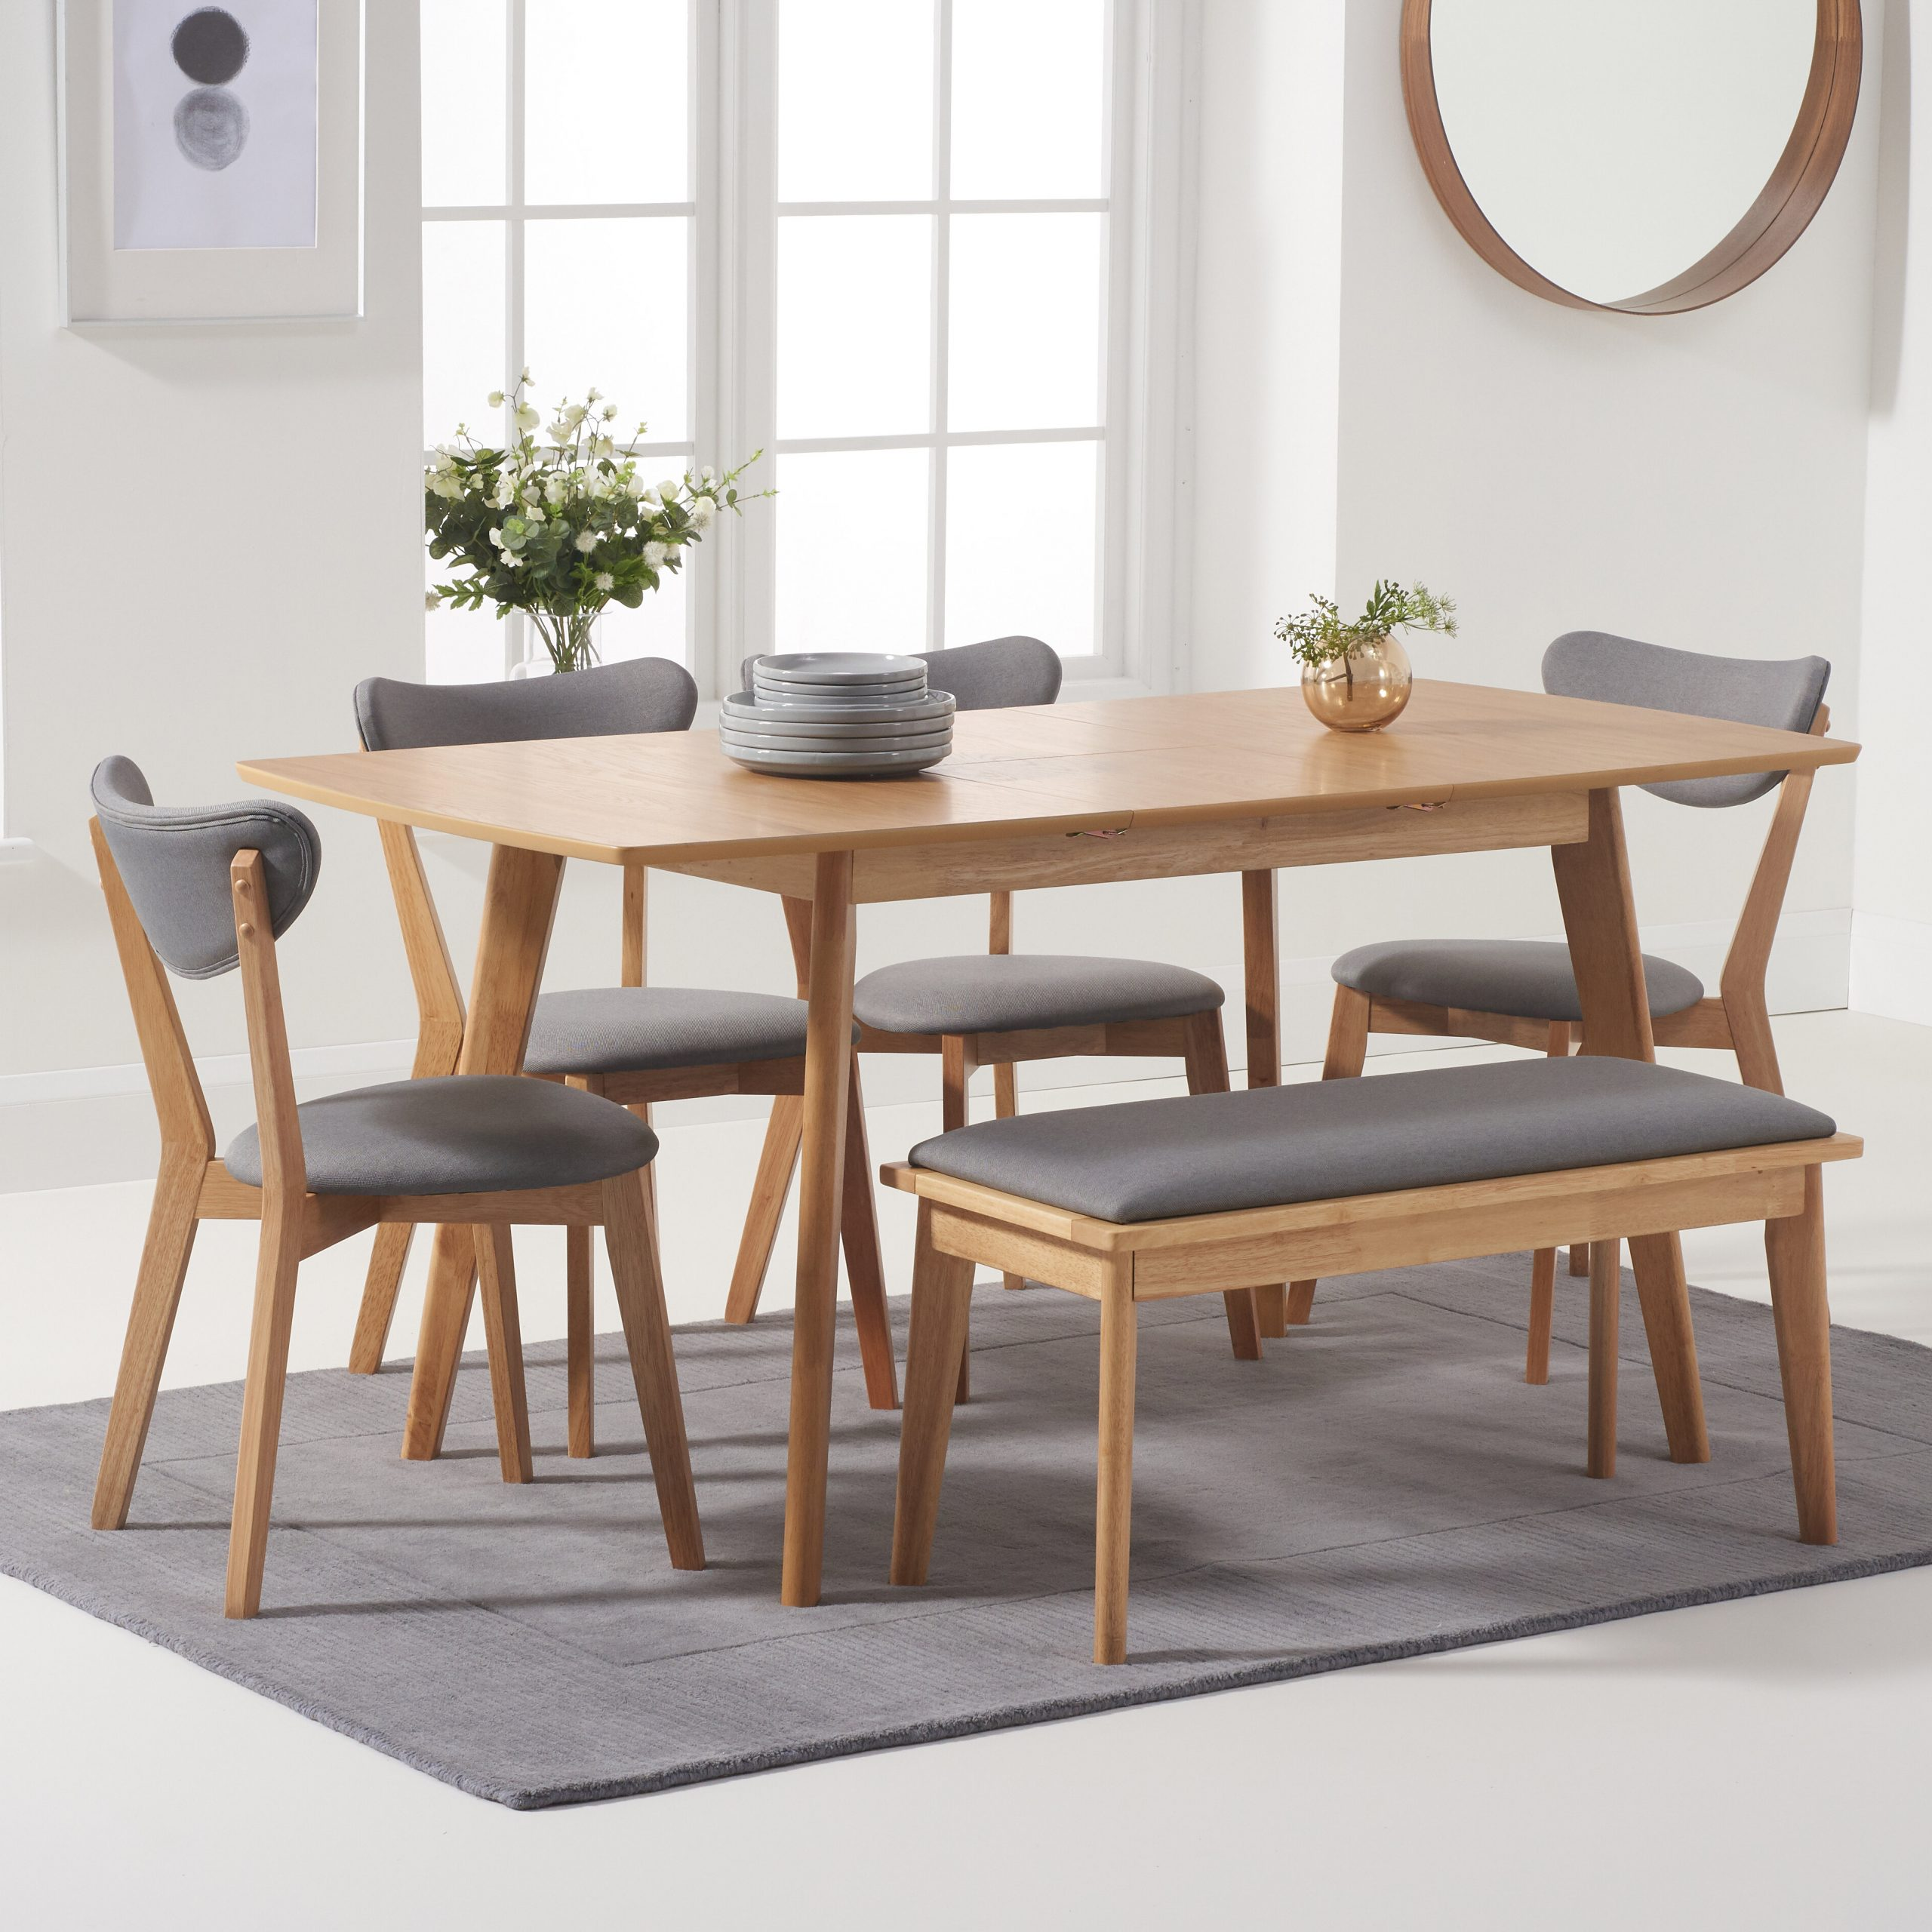 Ideas About Extending Dining Bench, – Howellmagic Dining Regarding Most Up To Date Alfresco Brown Banks Pedestal Extending Dining Tables (View 18 of 25)